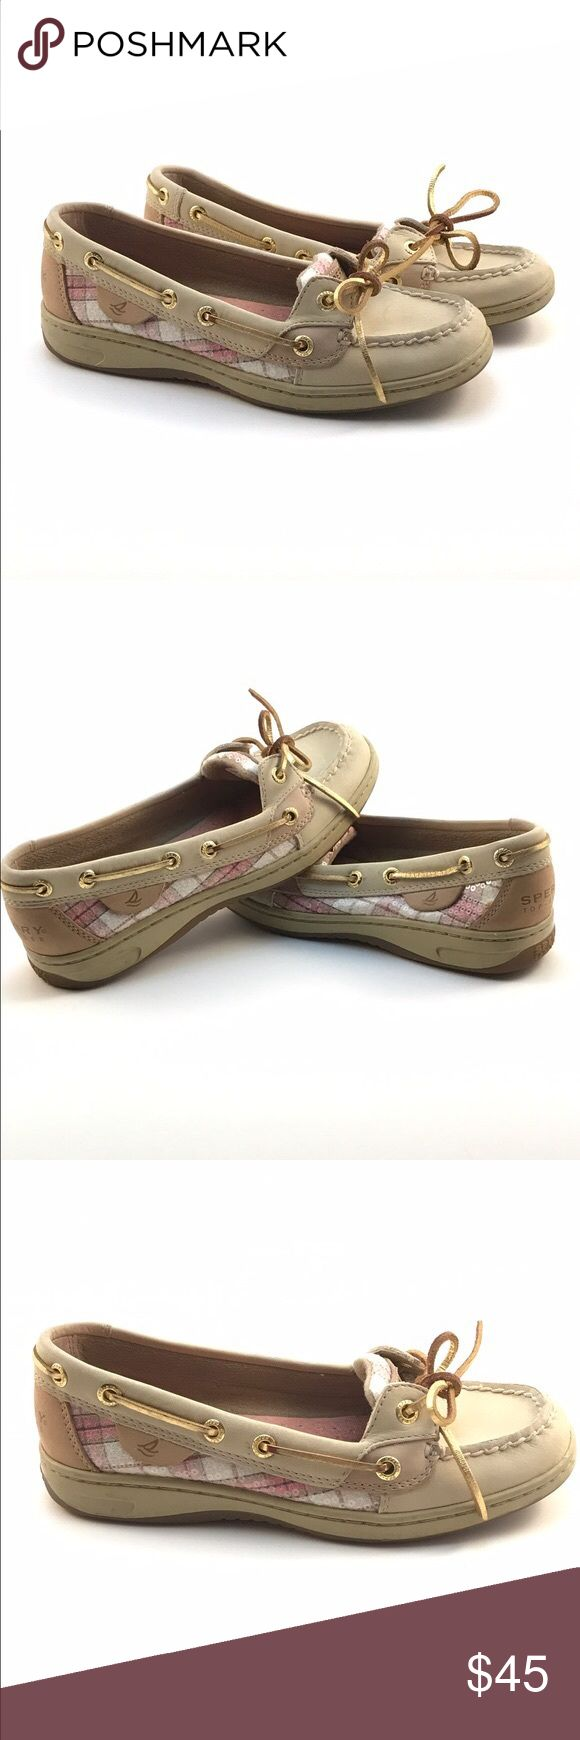 Women's Sperry Top Sider Pink Plaid Angelfish 5.5 Only worn twice! Brand new looking Sperry Angelfish with a pink plaid sequin accent.Get them before they're gone! Perfect for upcoming summer fun! Sperry Top-Sider Shoes Flats & Loafers